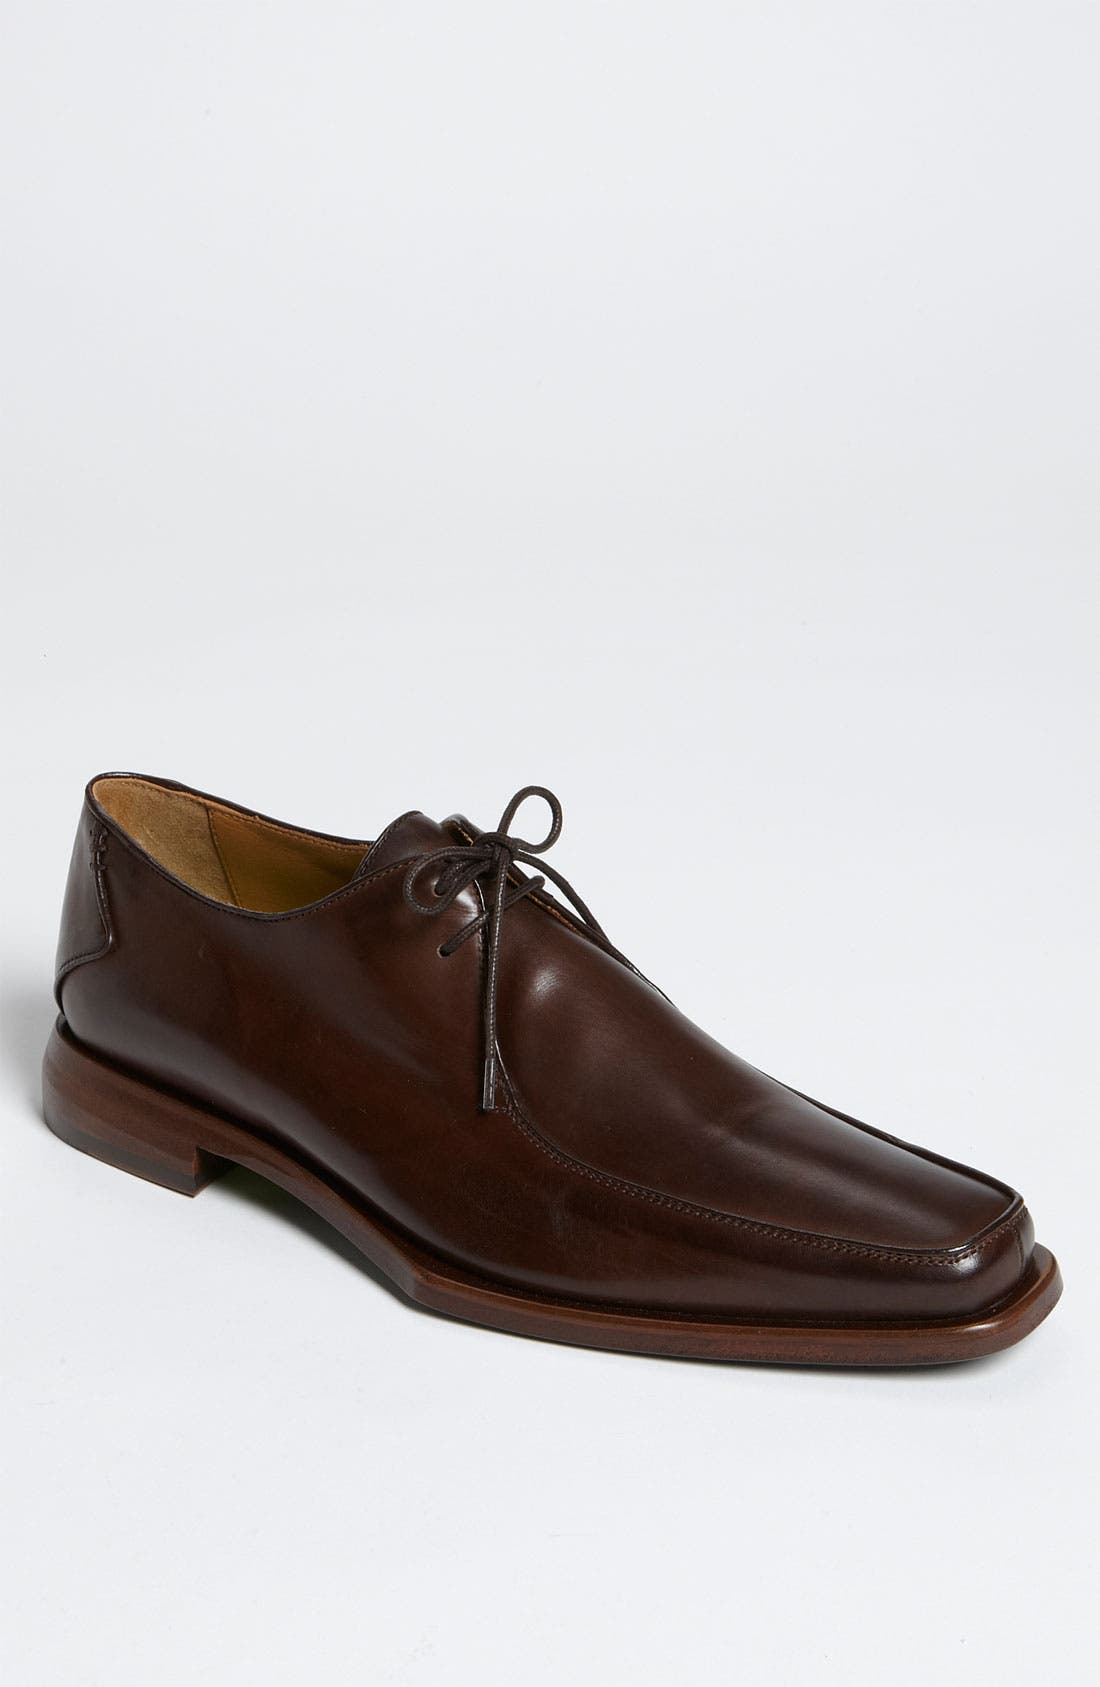 Alternate Image 1 Selected - Oliver Sweeney 'Holman' Apron Toe Oxford